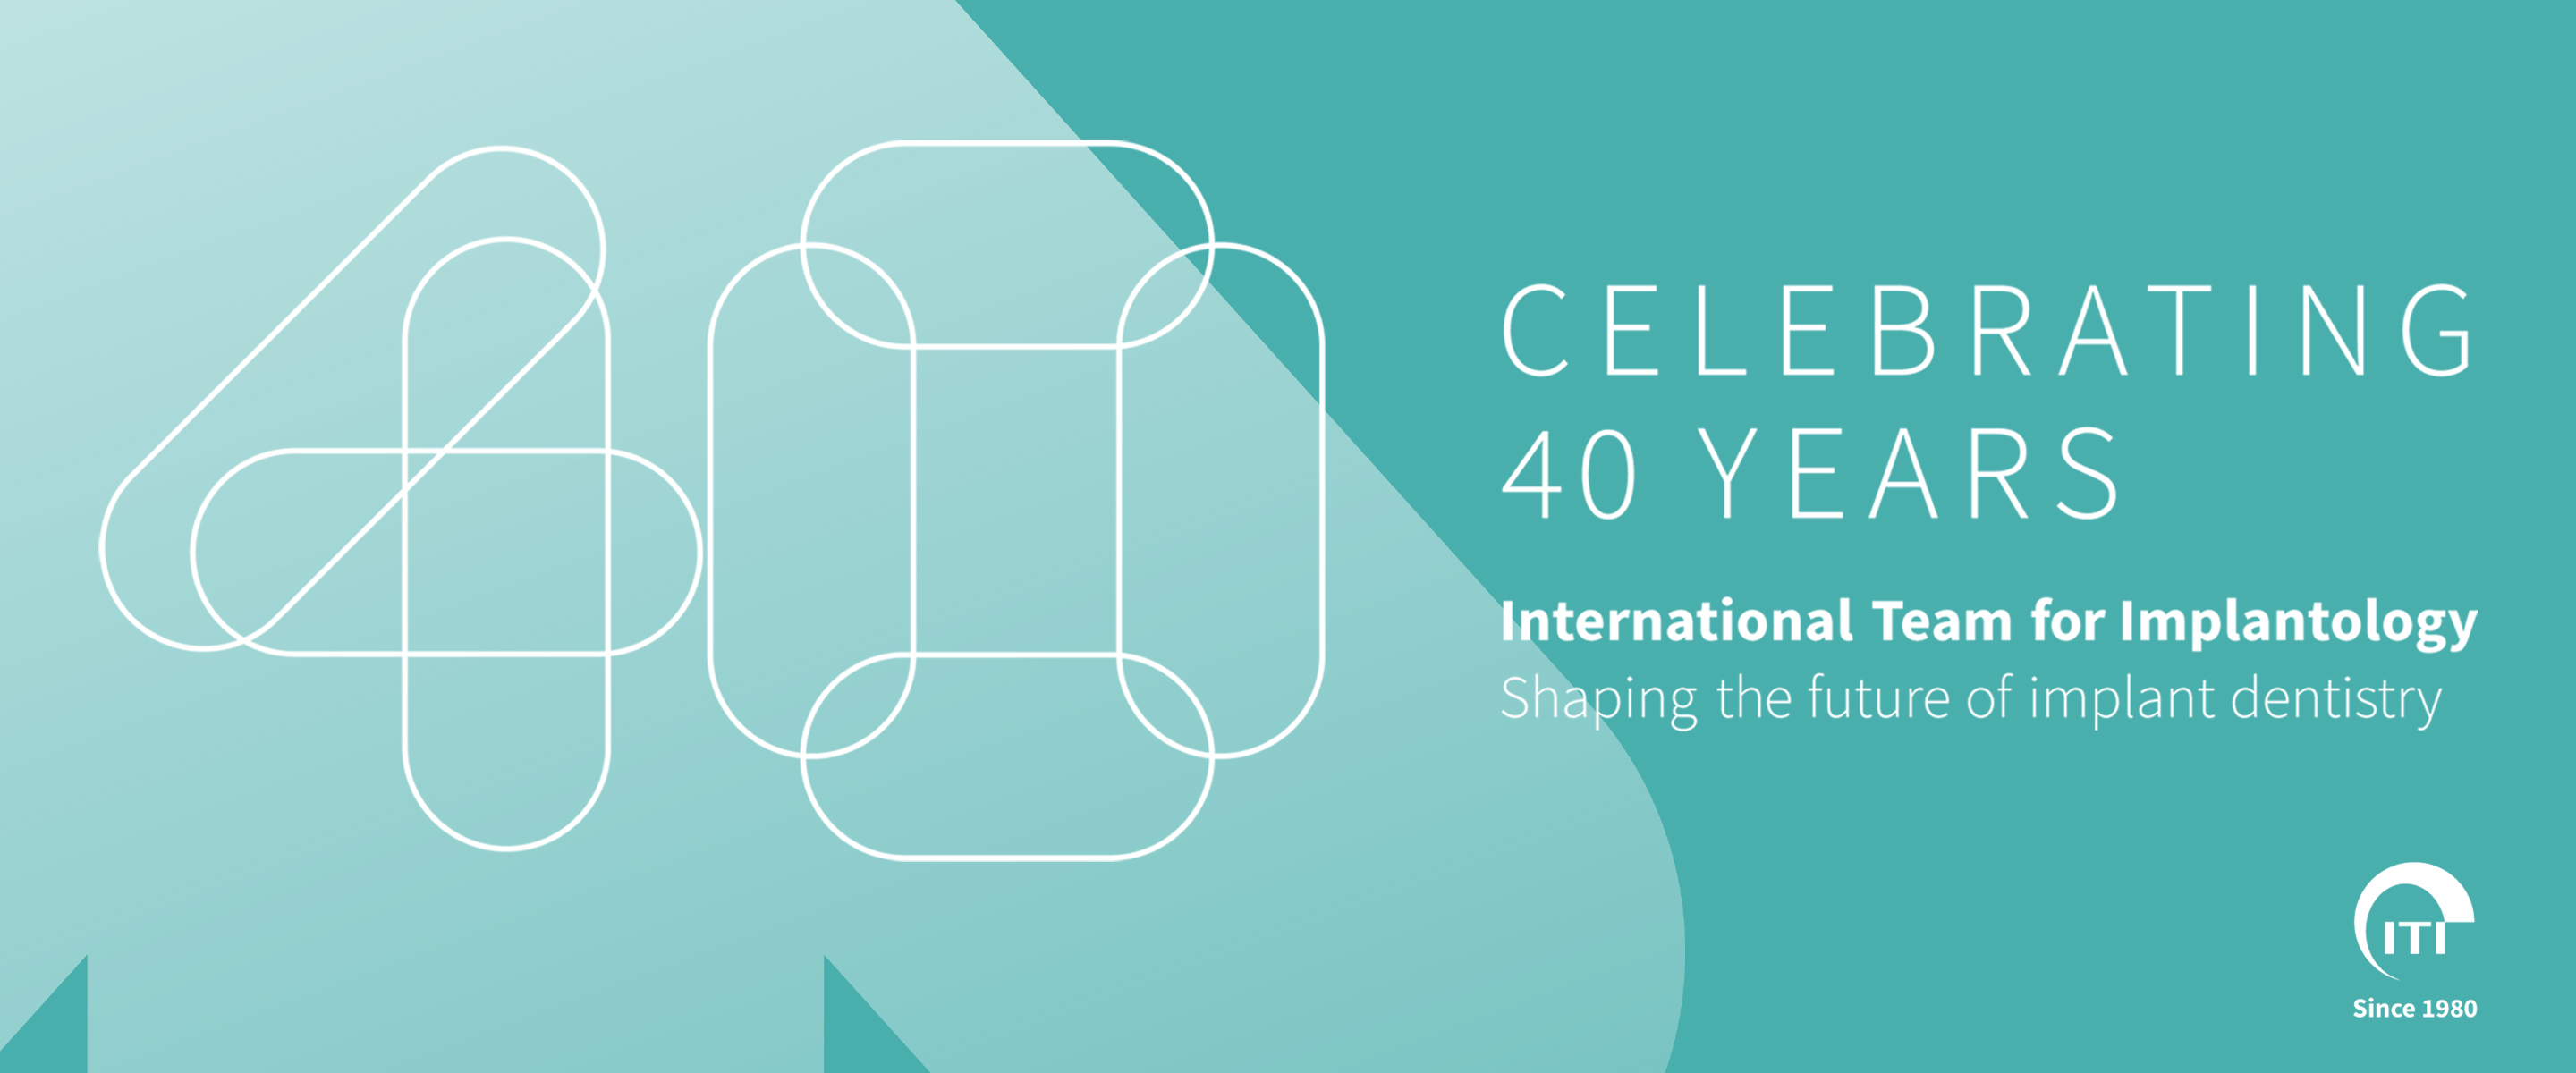 40 years of ITI microsite